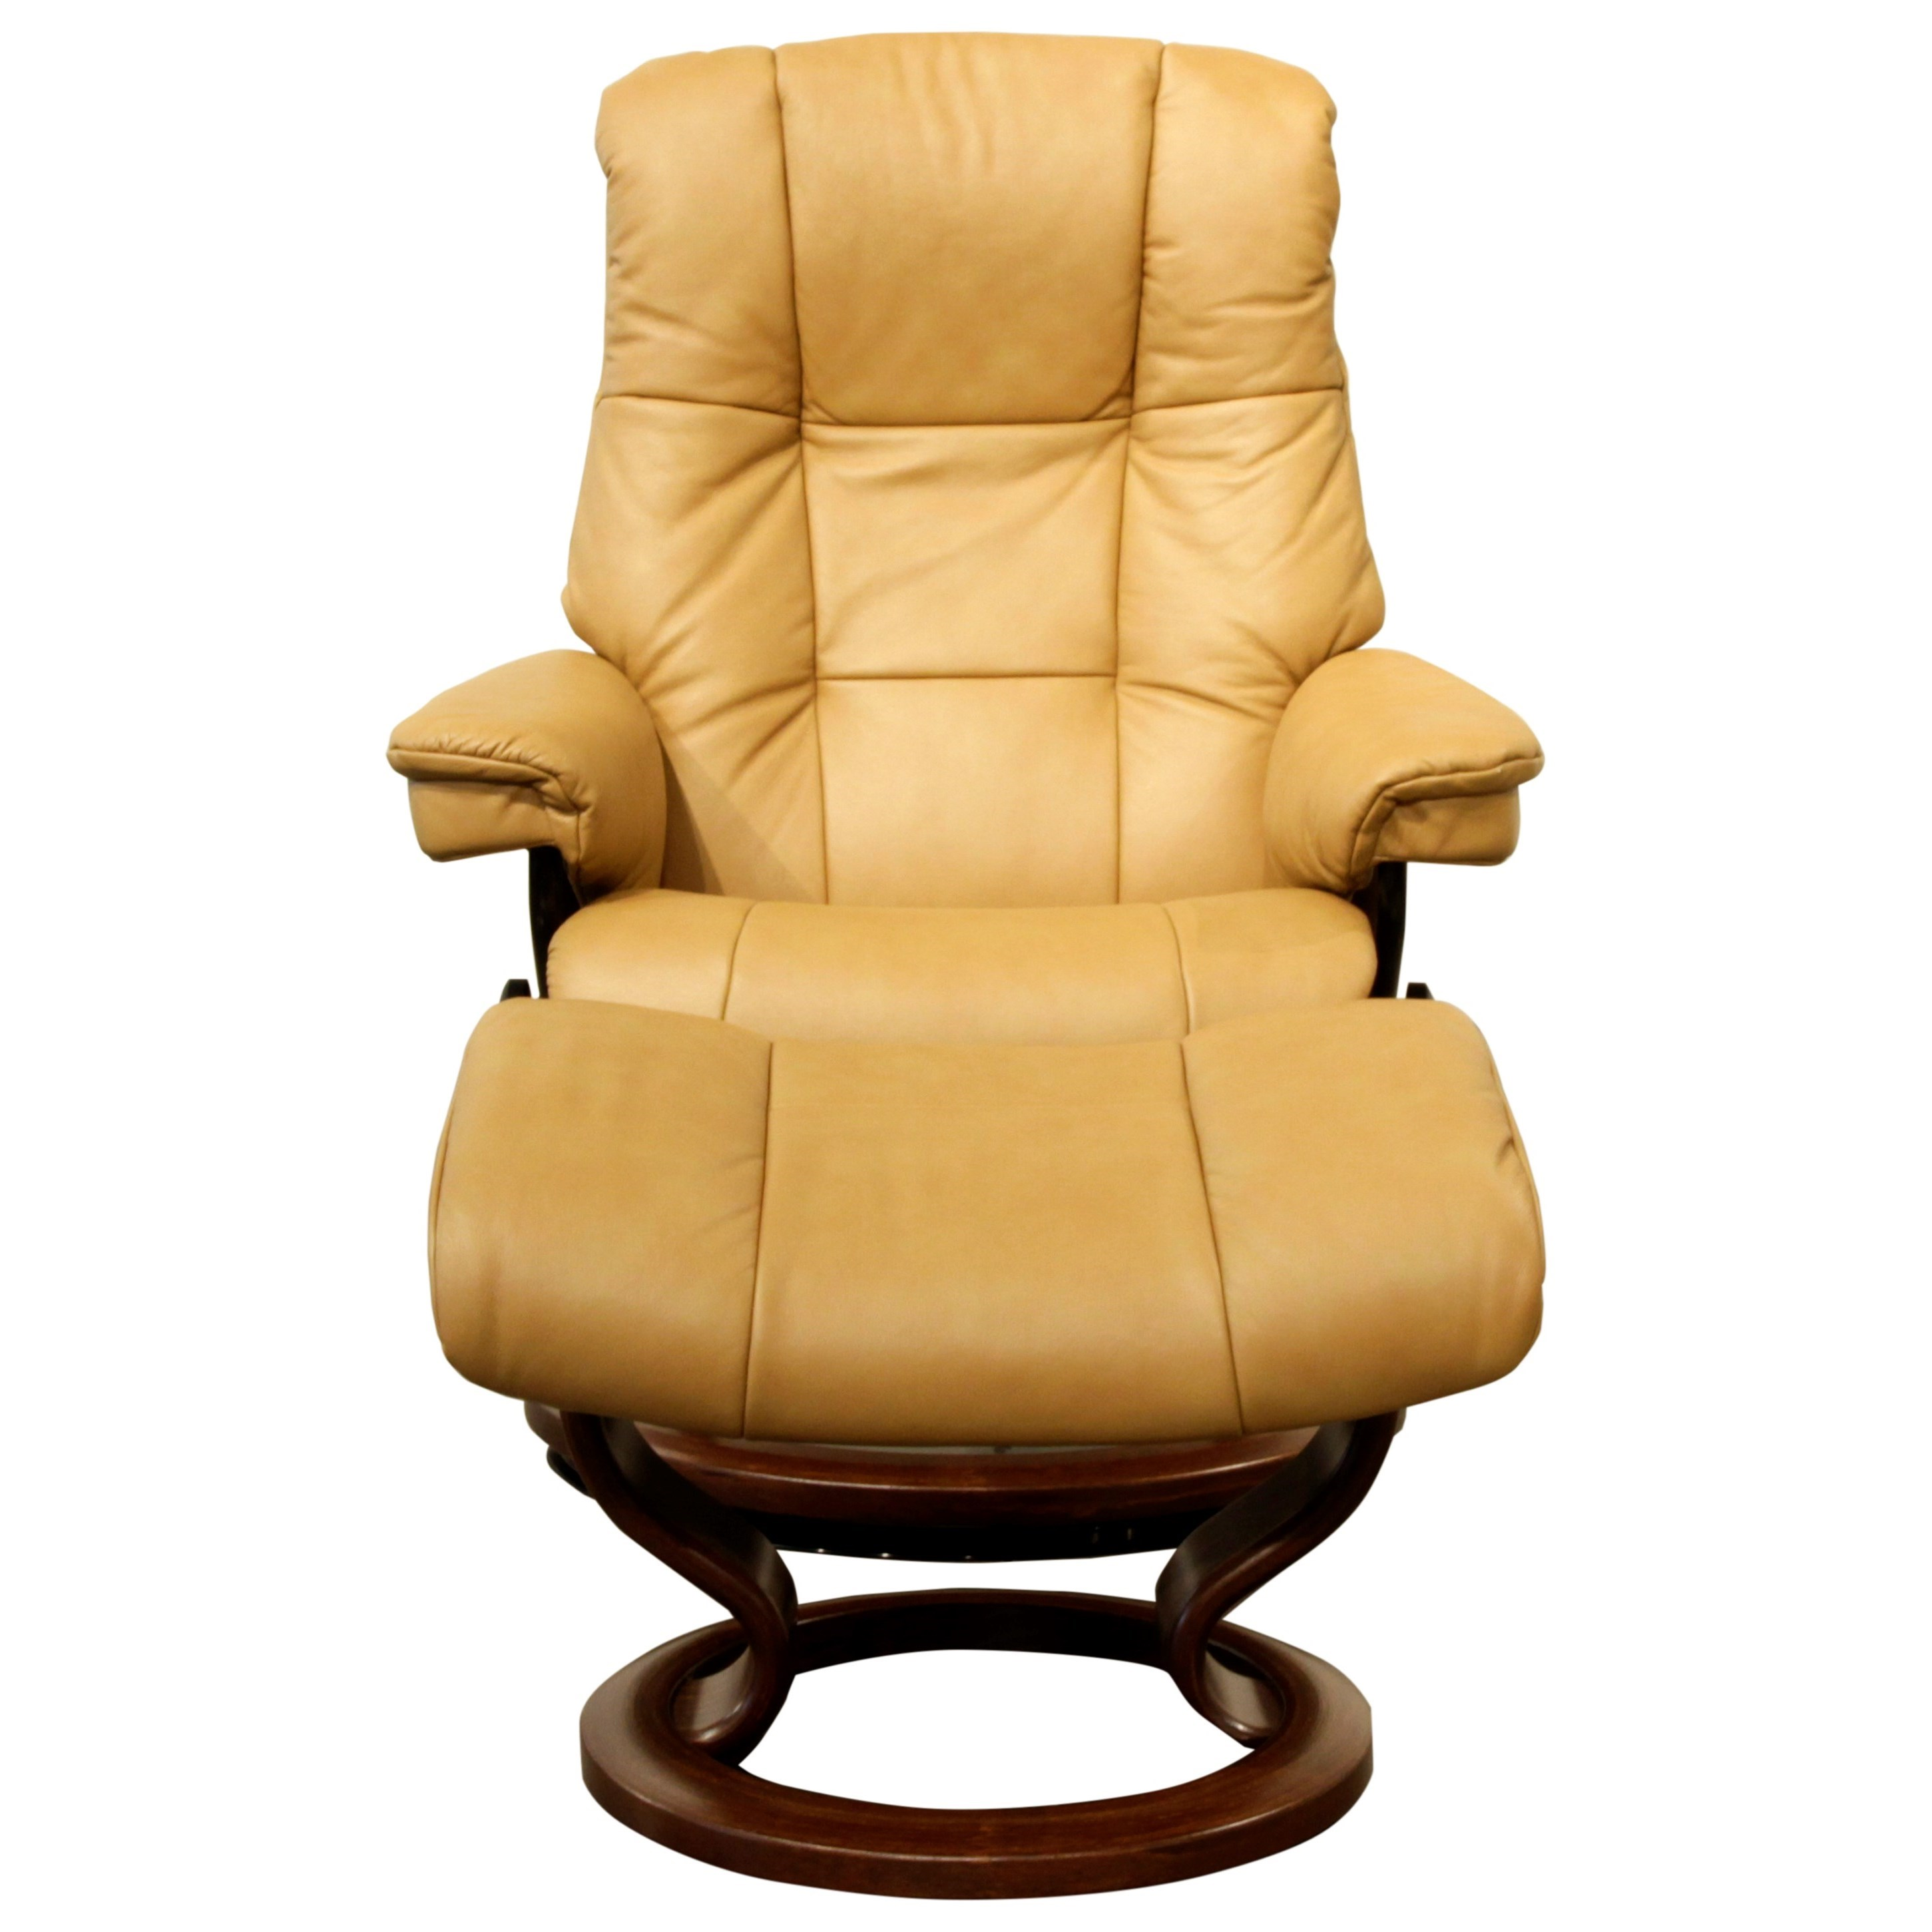 Stressless Recliners With Ottoman Stressless Stressless Recliners Small Reclining Chair